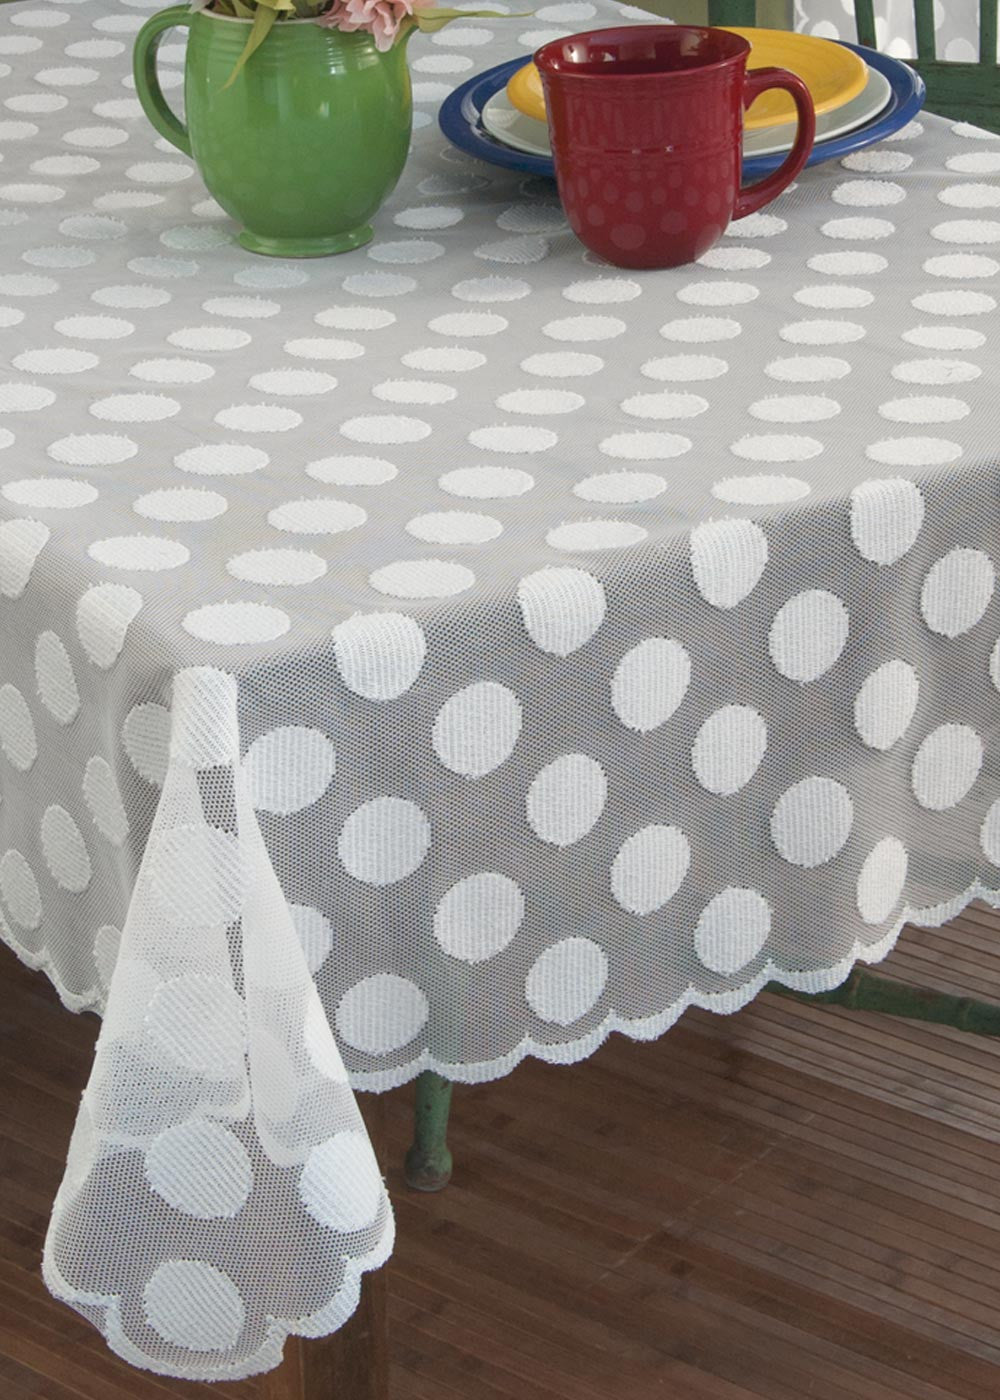 "Polka Dot Lace Tablecloth 58""x 58"" by Heritage Lace"